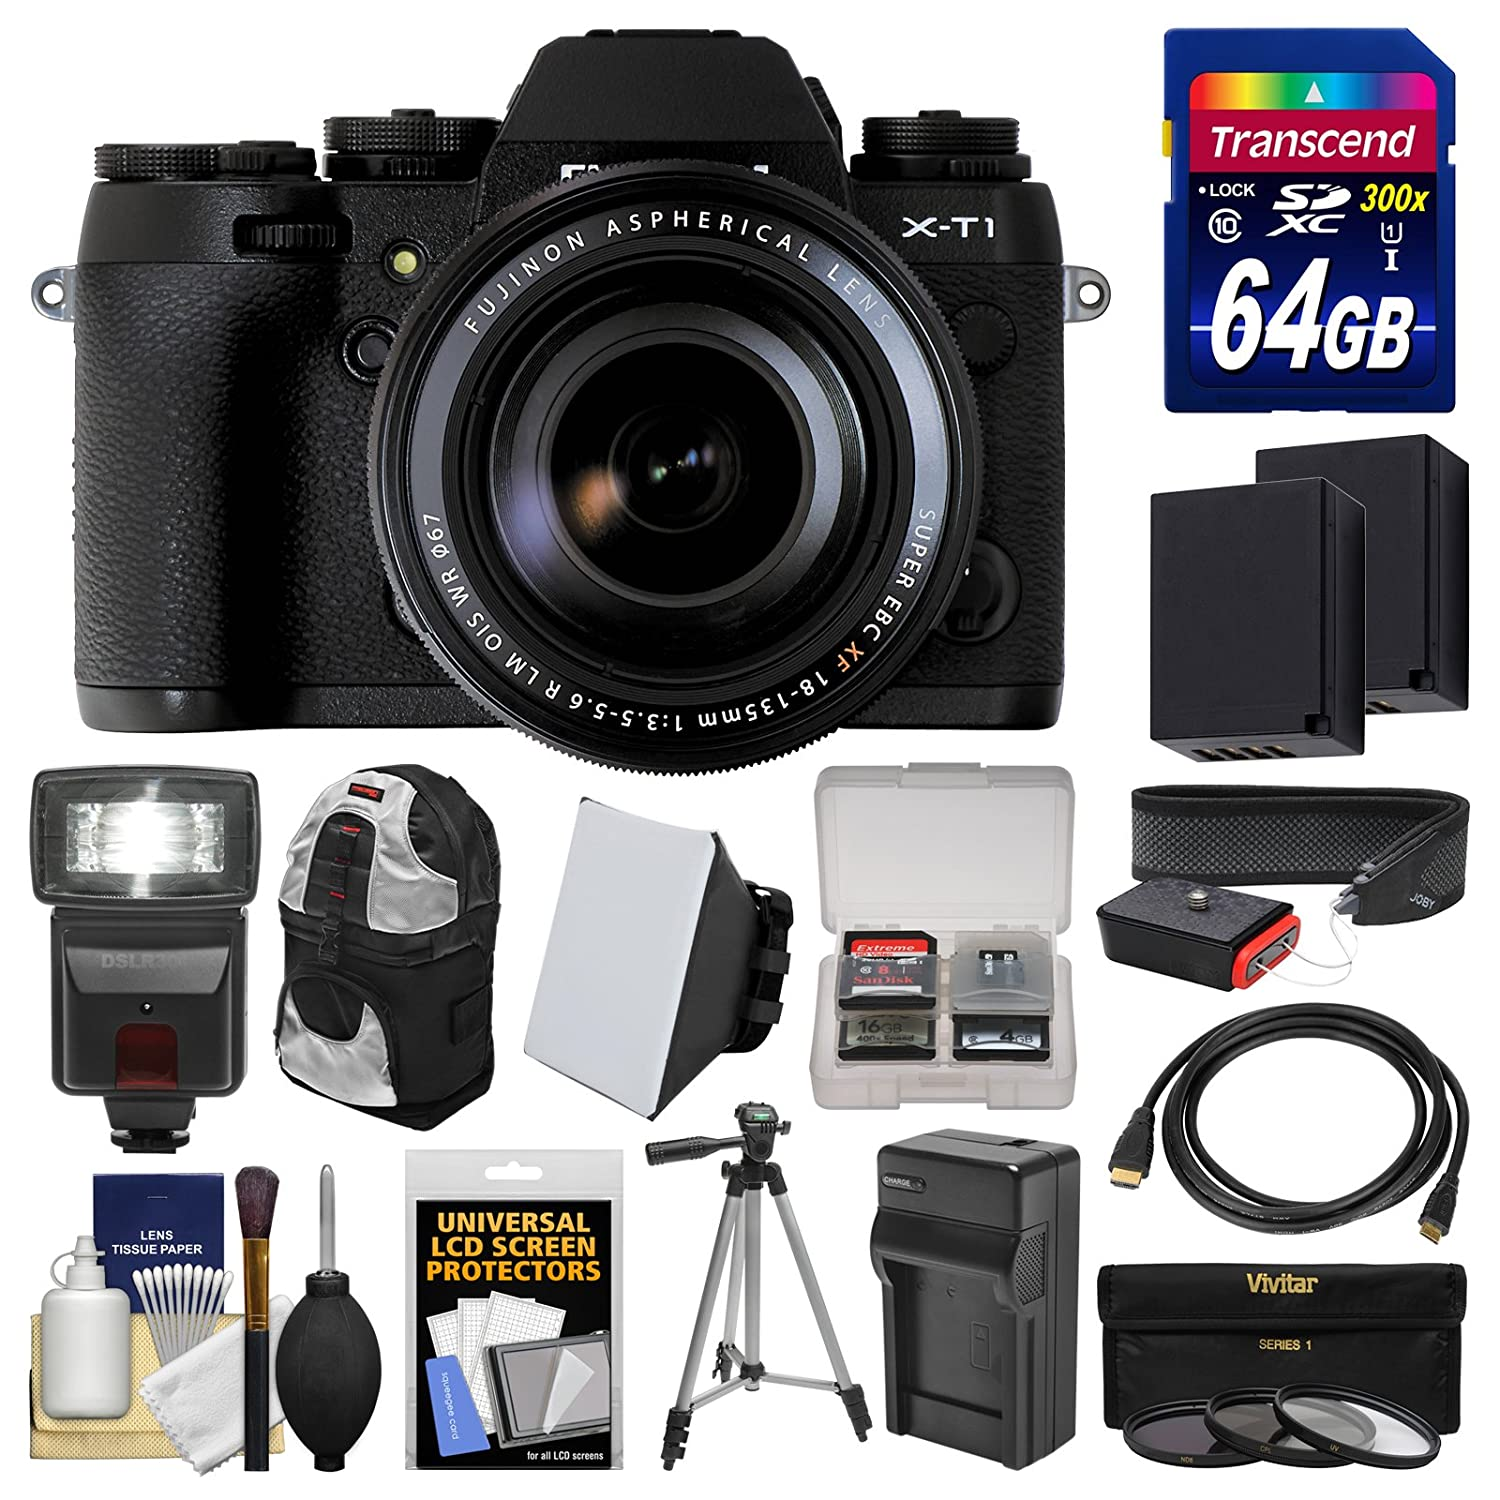 Fujifilm X-T1 Weather Resistant Digital Camera & 18-135mm XF Lens with 64GB Card + Case + Flash + Batteries & Charger + Tripod + Kit